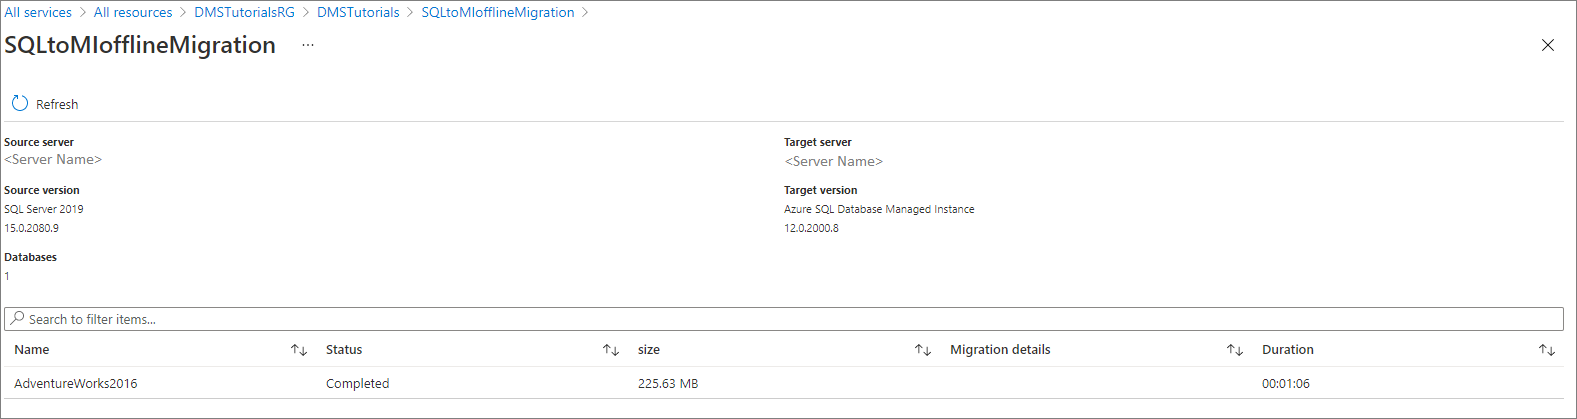 Tutorial: Use DMS to migrate to an Azure SQL Database managed